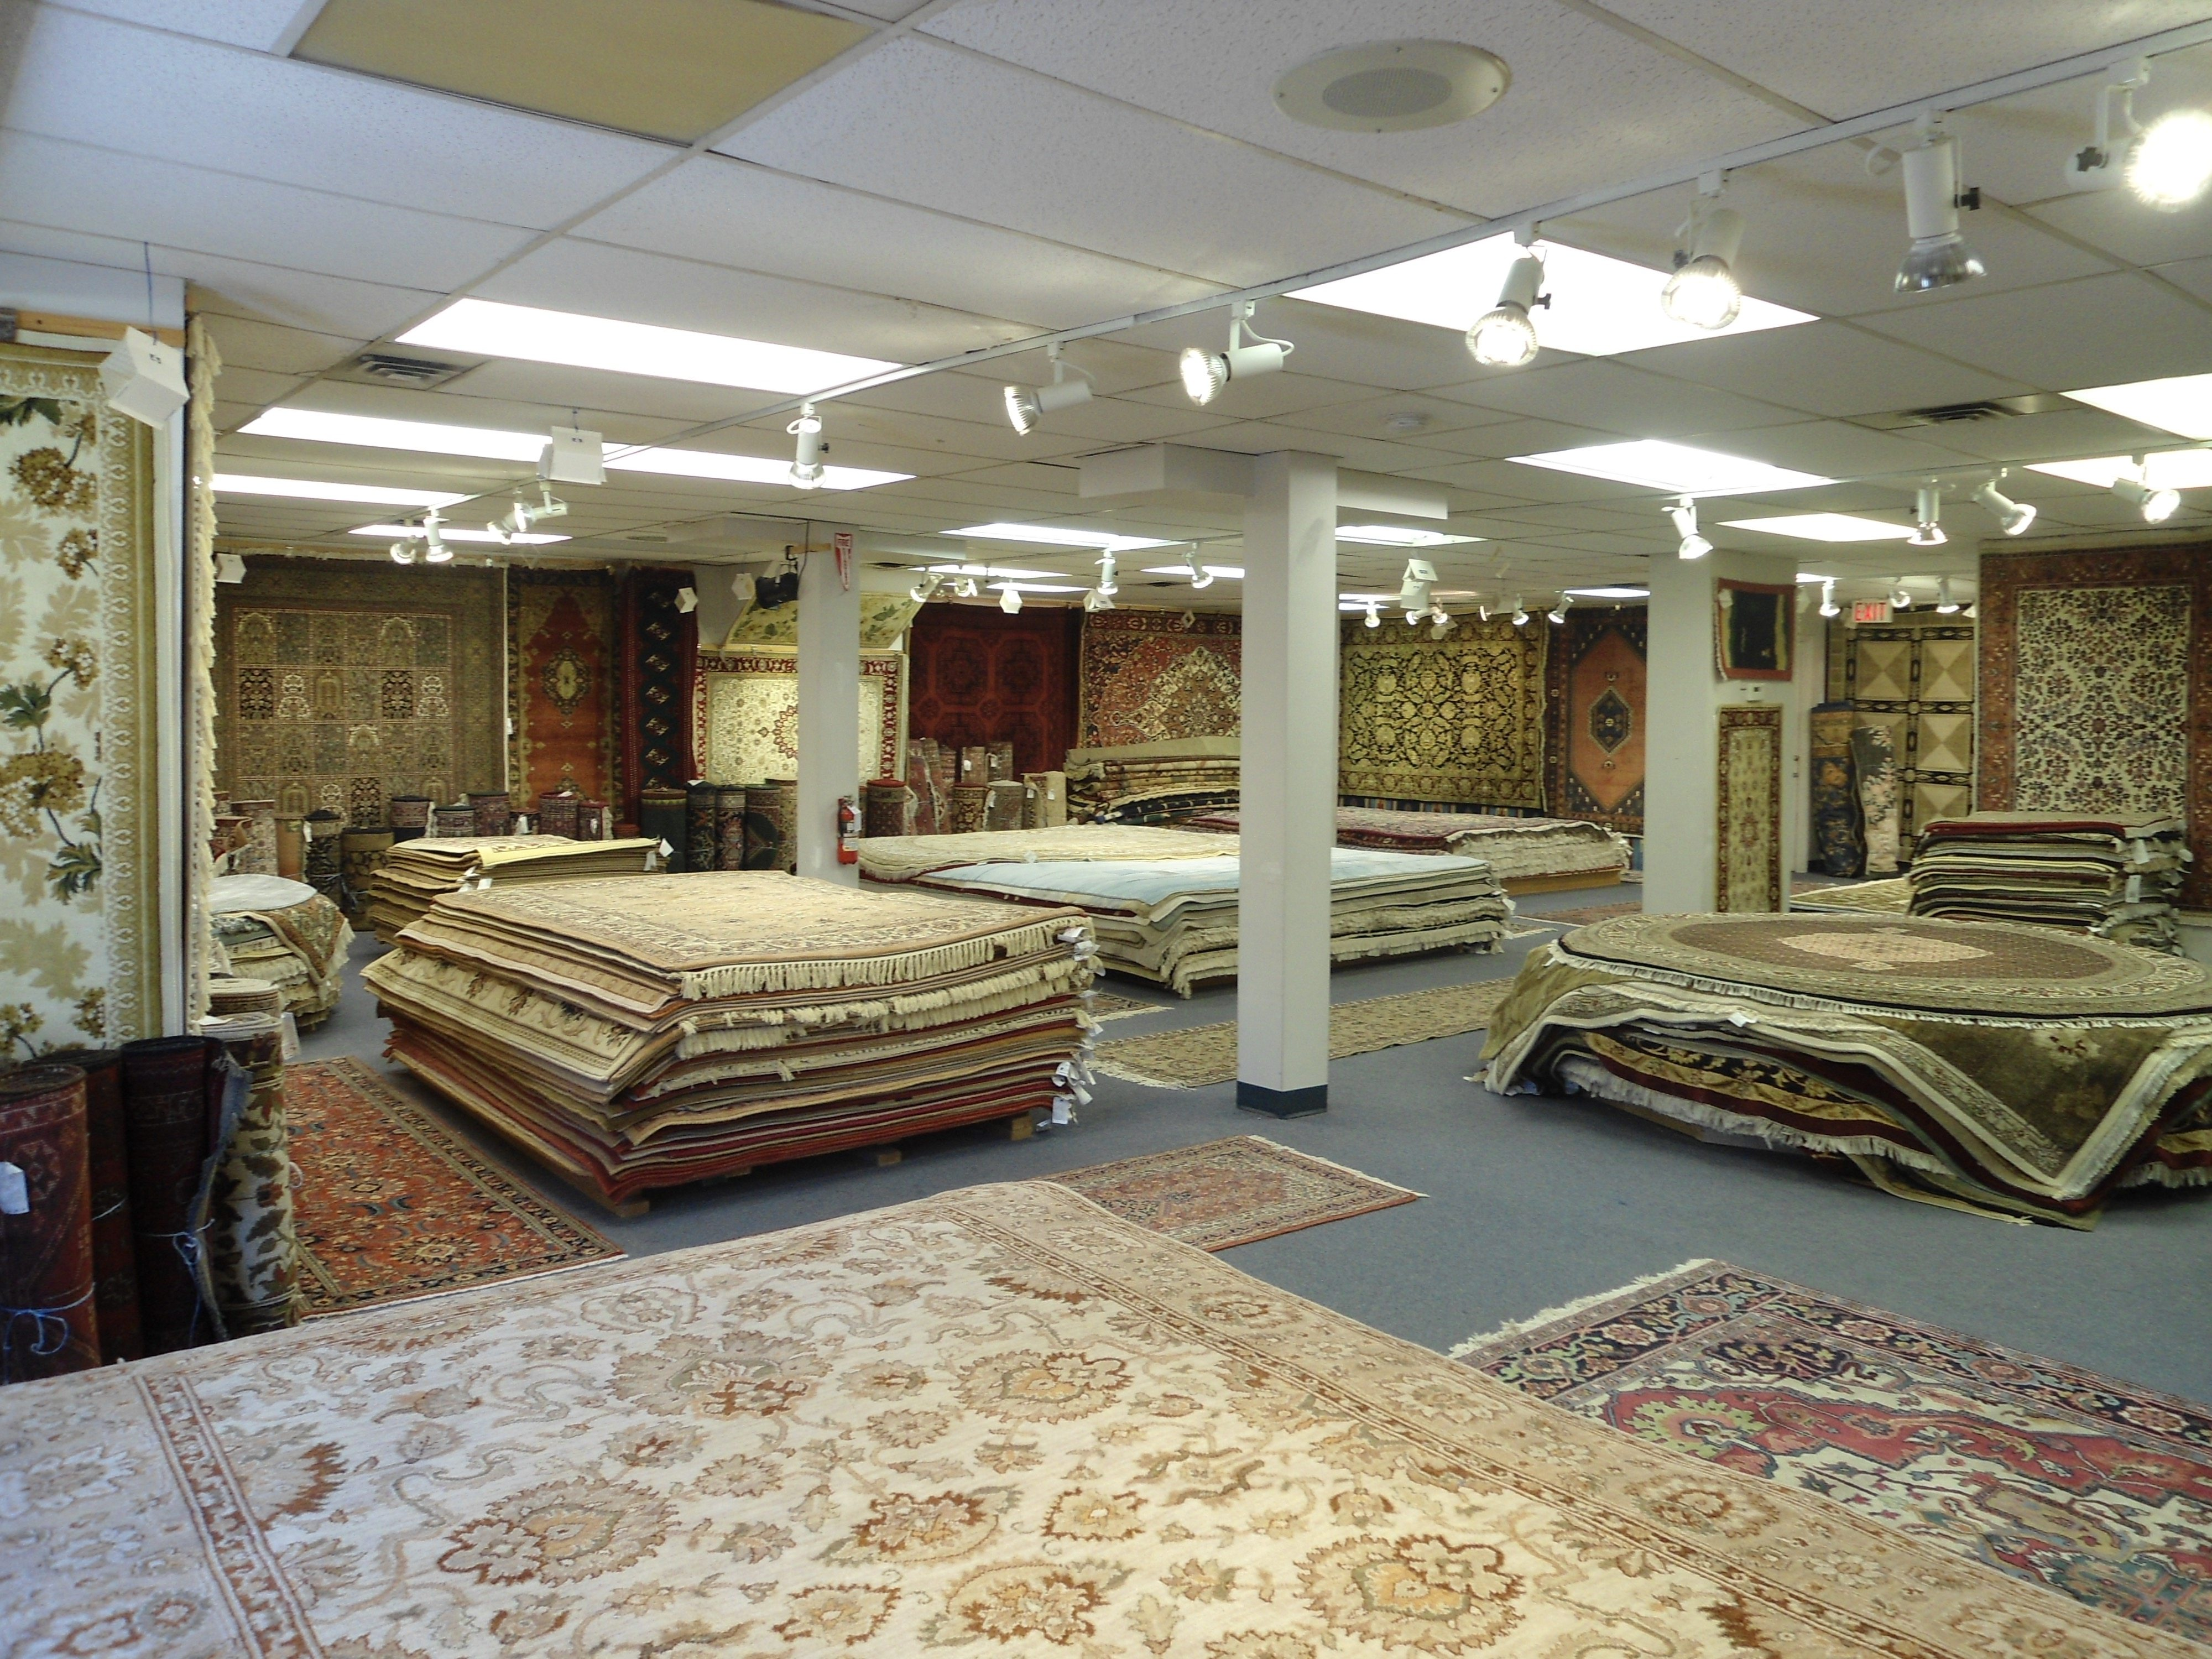 Selection of Persian, Nepali, Indian, Pakastani, Afghani, Chinese and Turkish rugs